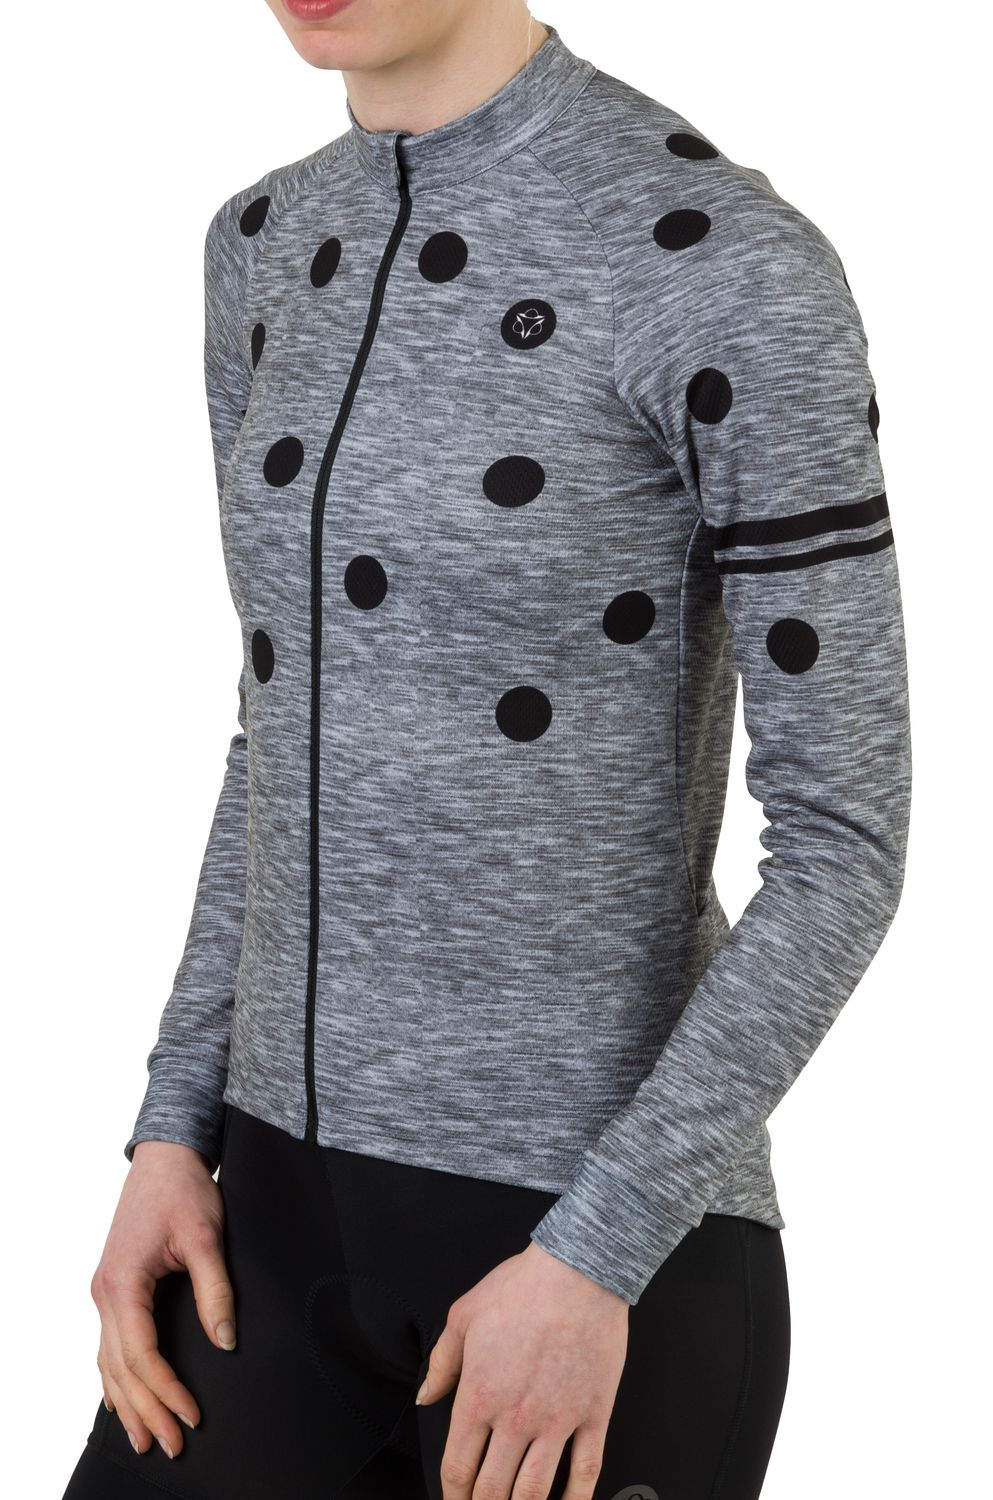 Dot Fietsshirt Lange Mouwen Essential Dames fit example